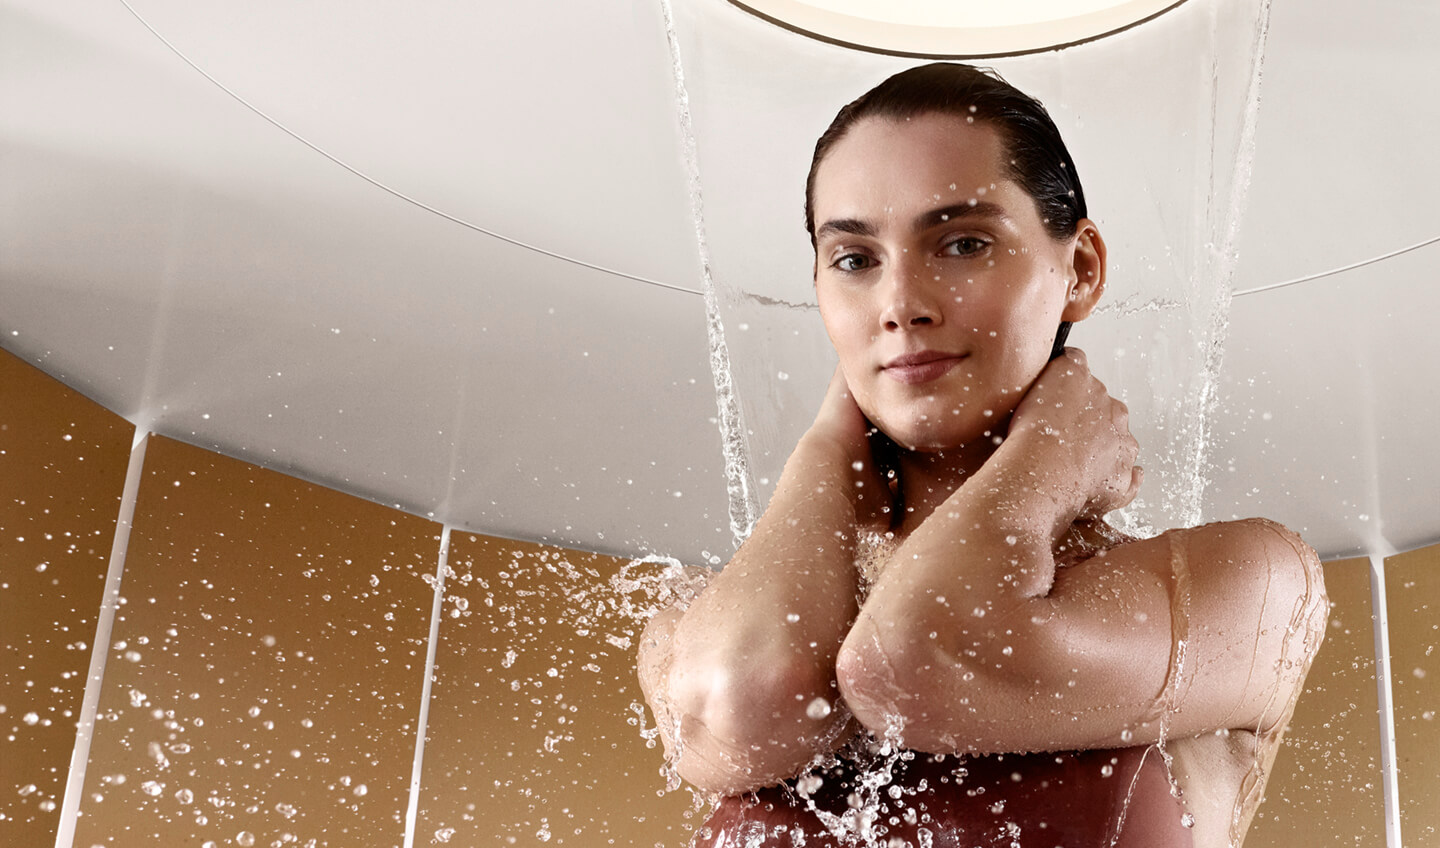 Dornbracht Experience Shower Aquamoon Luxury Bathroom